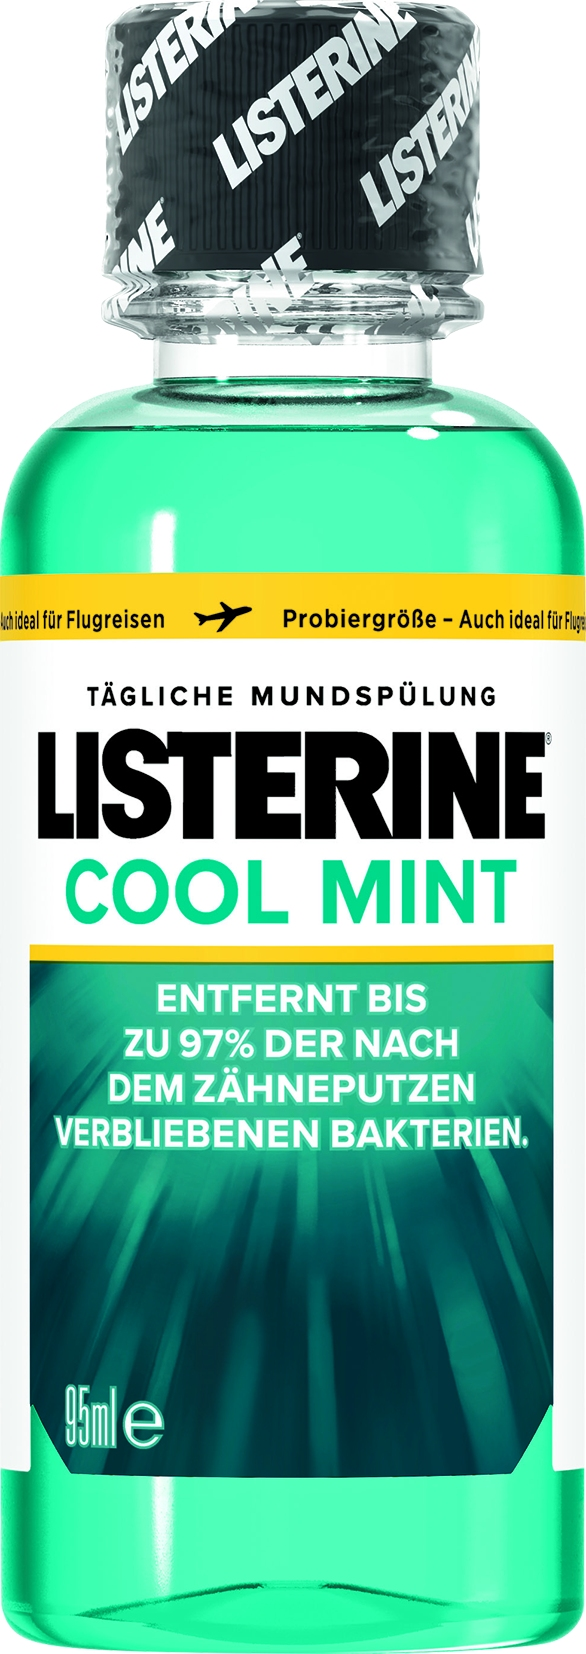 Mundspuelung Cool Mint